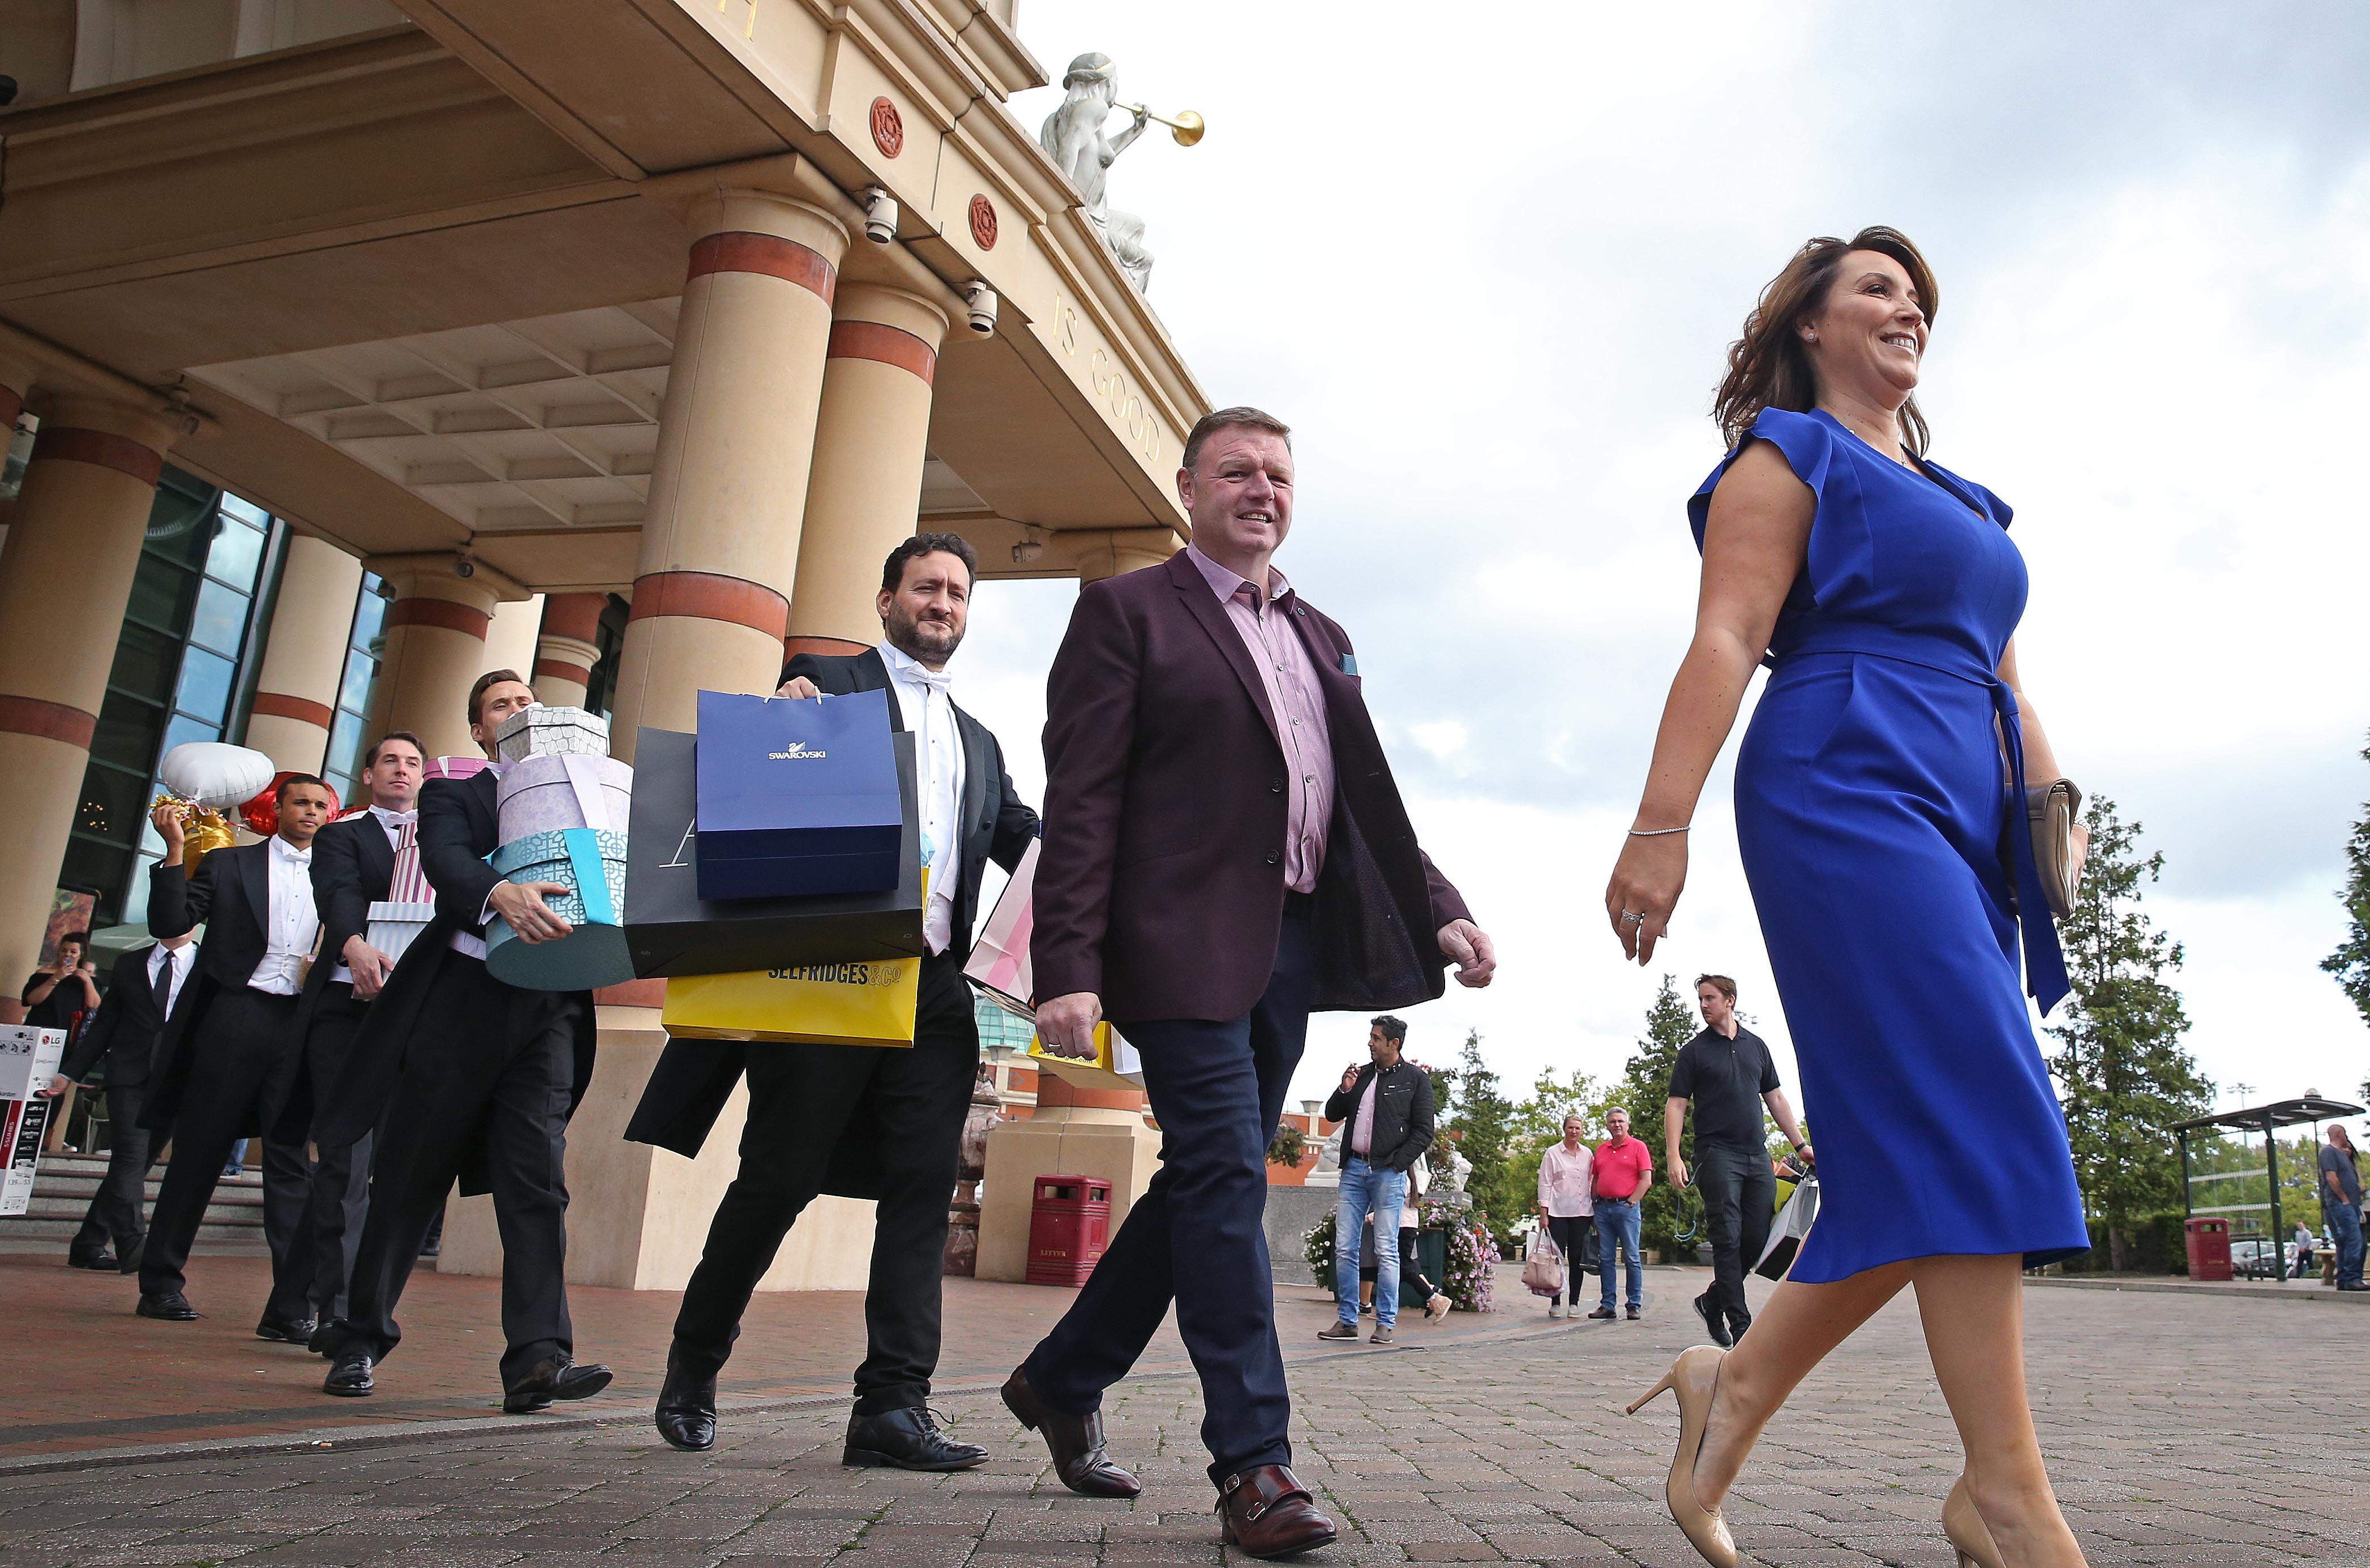 A line of very smart butlers and security guards in black and white suits, follow a smiling couple out of a shopping centre carrying colourful shopping bags and boxes.